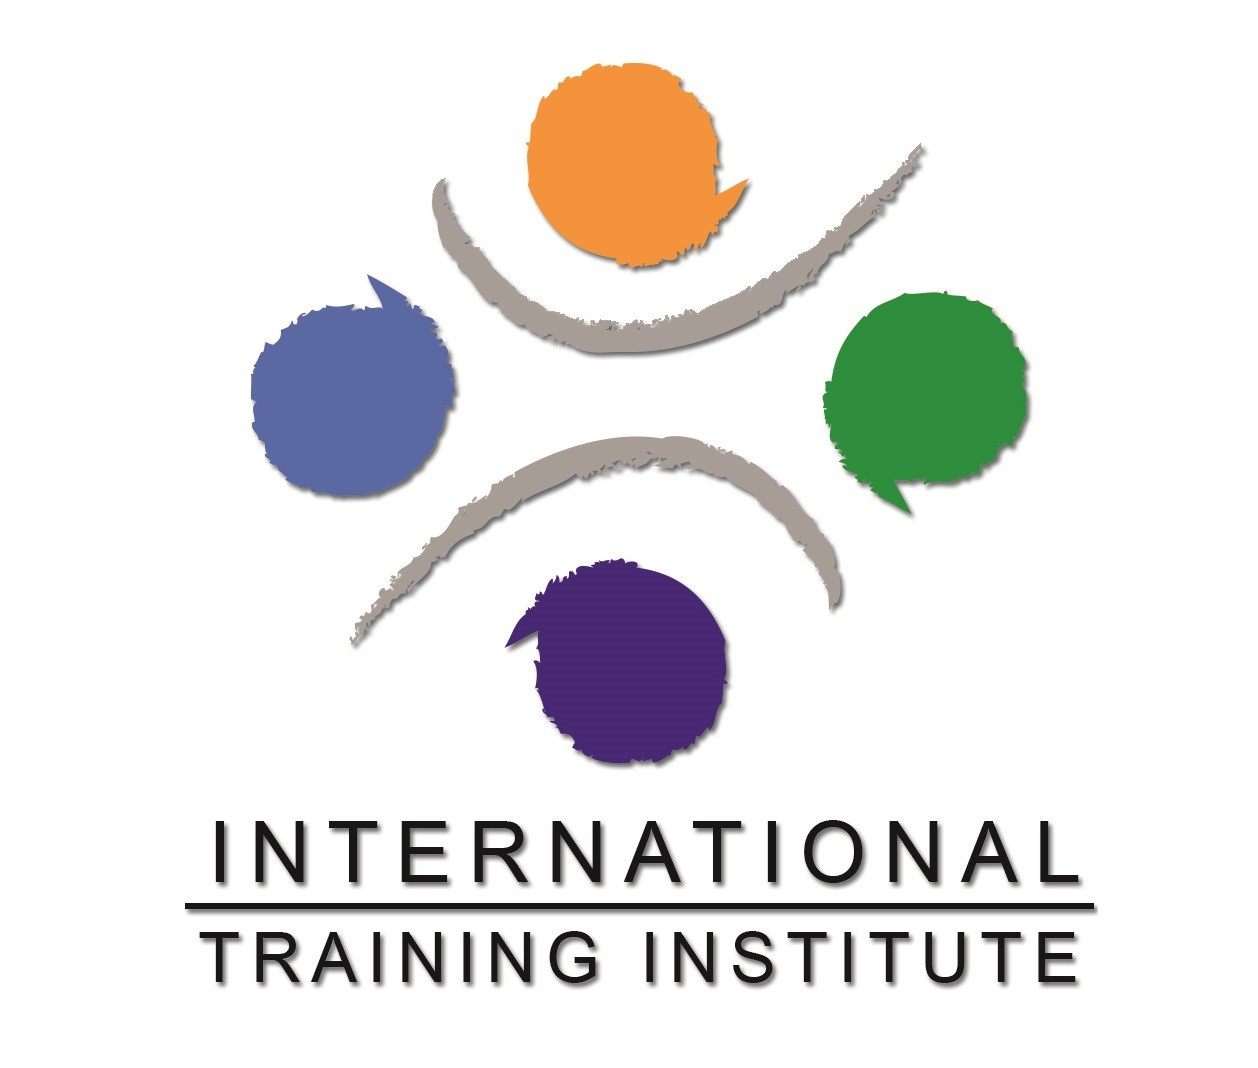 More about International Training Institute